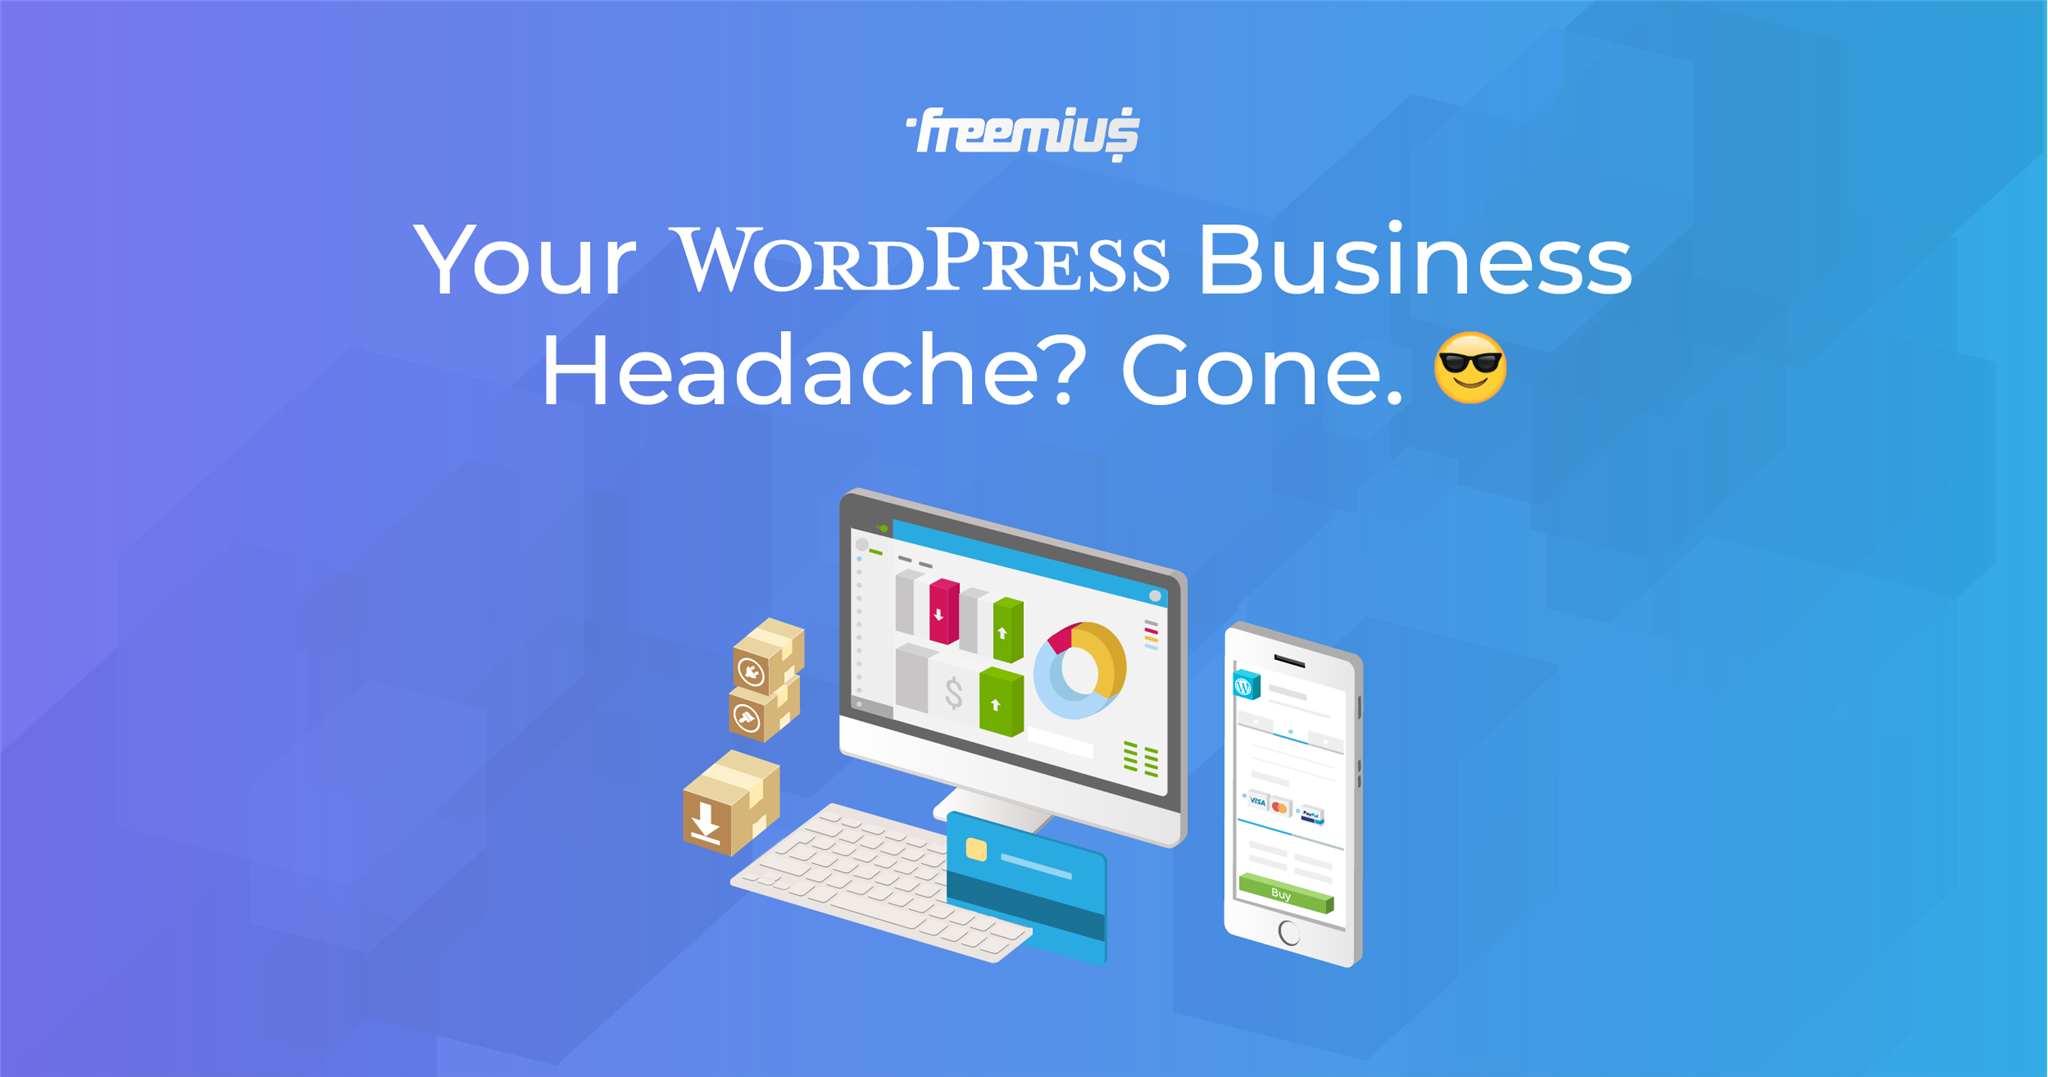 Selling through Freemius - your WordPress business headach gone